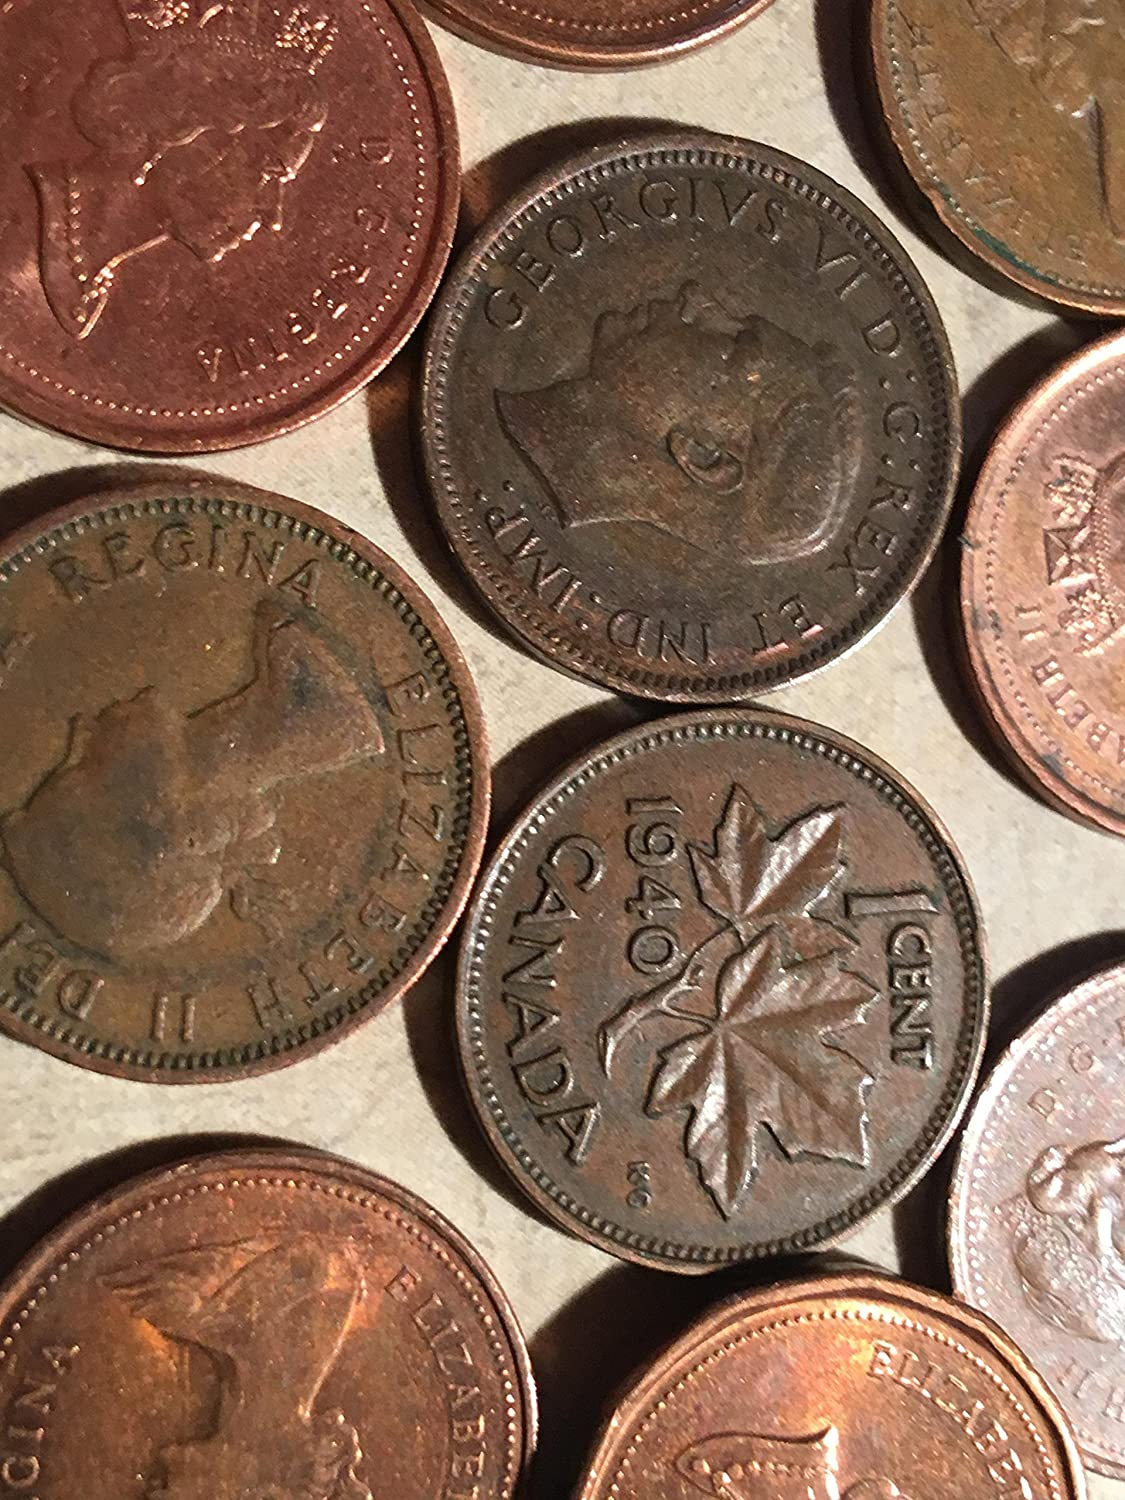 Roll Canadian Cents Canada Pennies 50 Coins Set 1940s to Present Great for Collectors Royal Canadian Mint